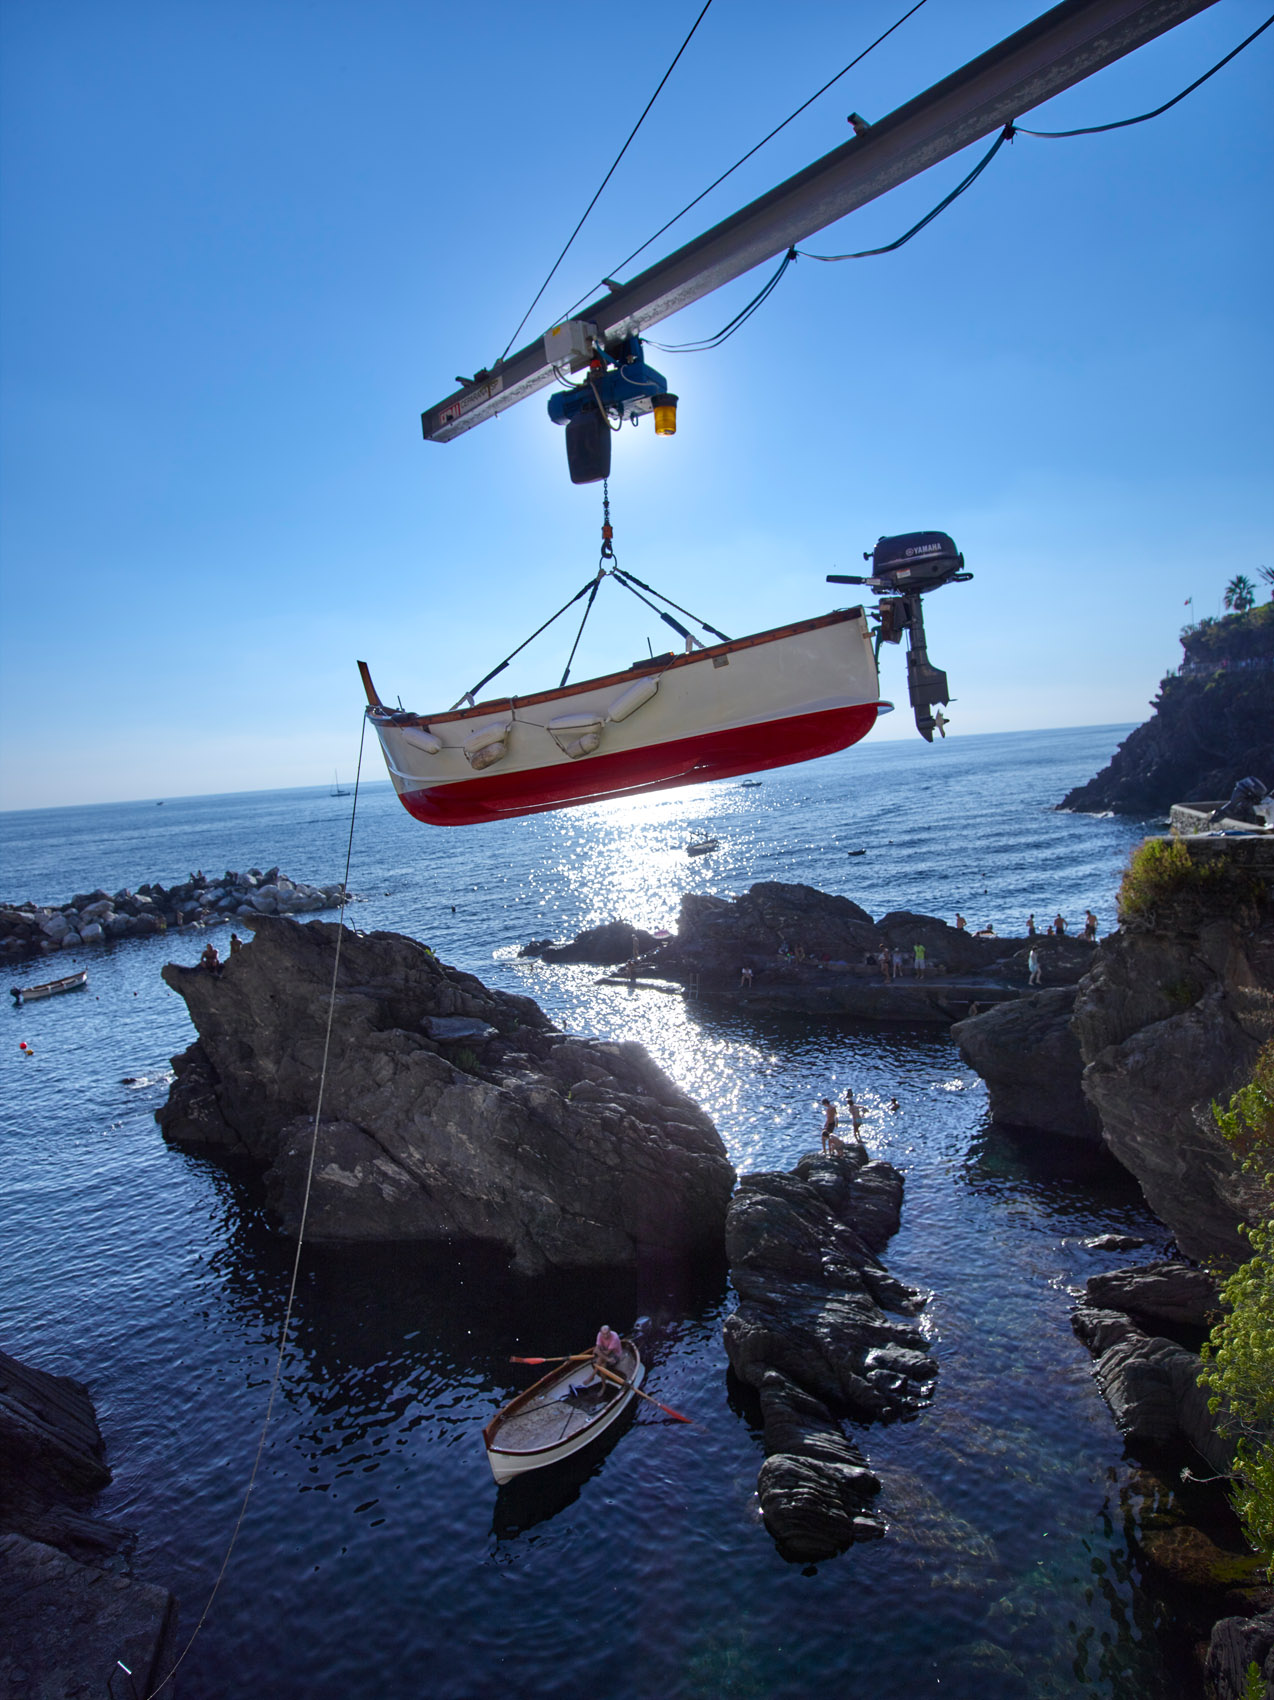 Hoisting up the cliffs of Manarola, Italy